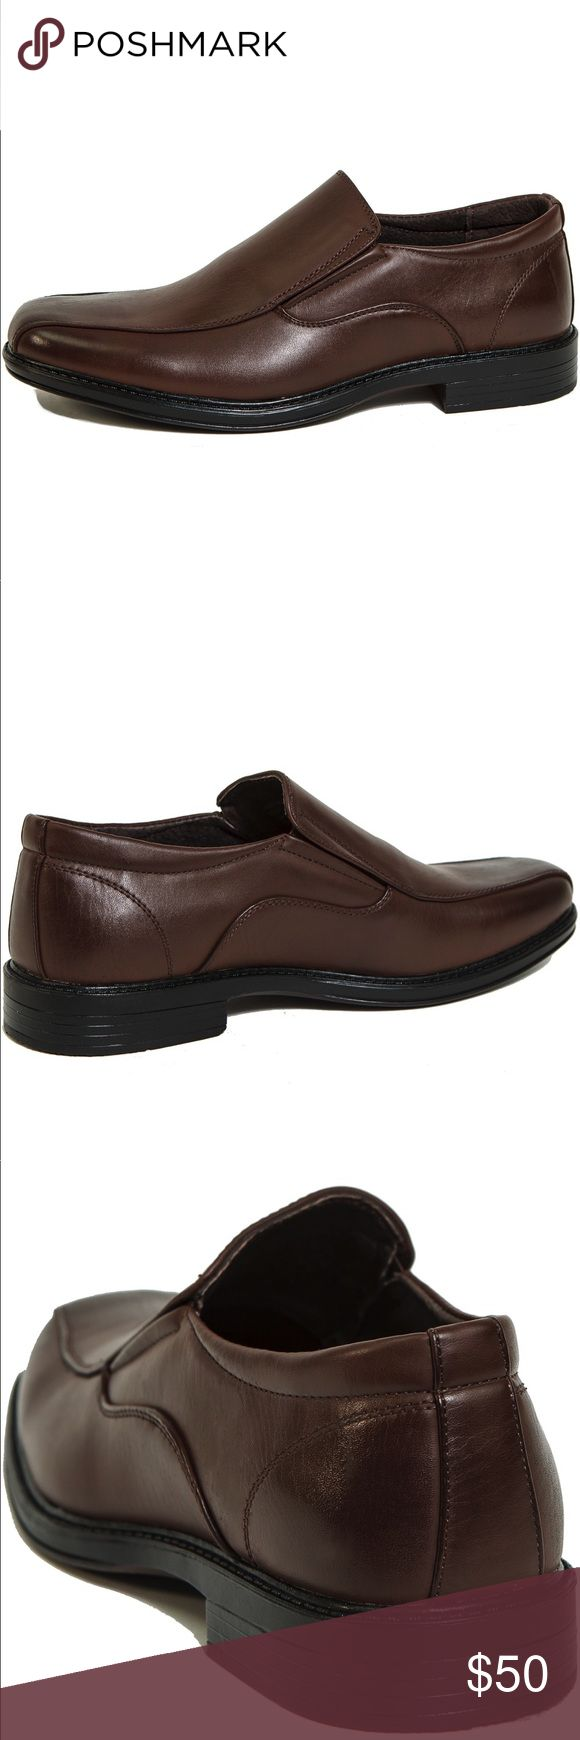 NWT- Alpine Swiss Men's Brown Loafer's NWT- Alpine Swiss Men's Brown Loafer's   Brand New, never worn, with Box (Box is damaged)  Loafer / Slip-on, Formal · Men · Rubber, Genuine Leather · US size 10    🔸If you want to save please look into bundling  🔸No Trades & NO HOLDS  🔸Will ship within 24- 48 hours Monday-Friday  🚫Please -NO- Offers on items priced $10 and under AND ON SALE  🔹Bundle one or more items from my boutique to only pay one shipping fee✨ Alpine Swiss Shoes Loafers…